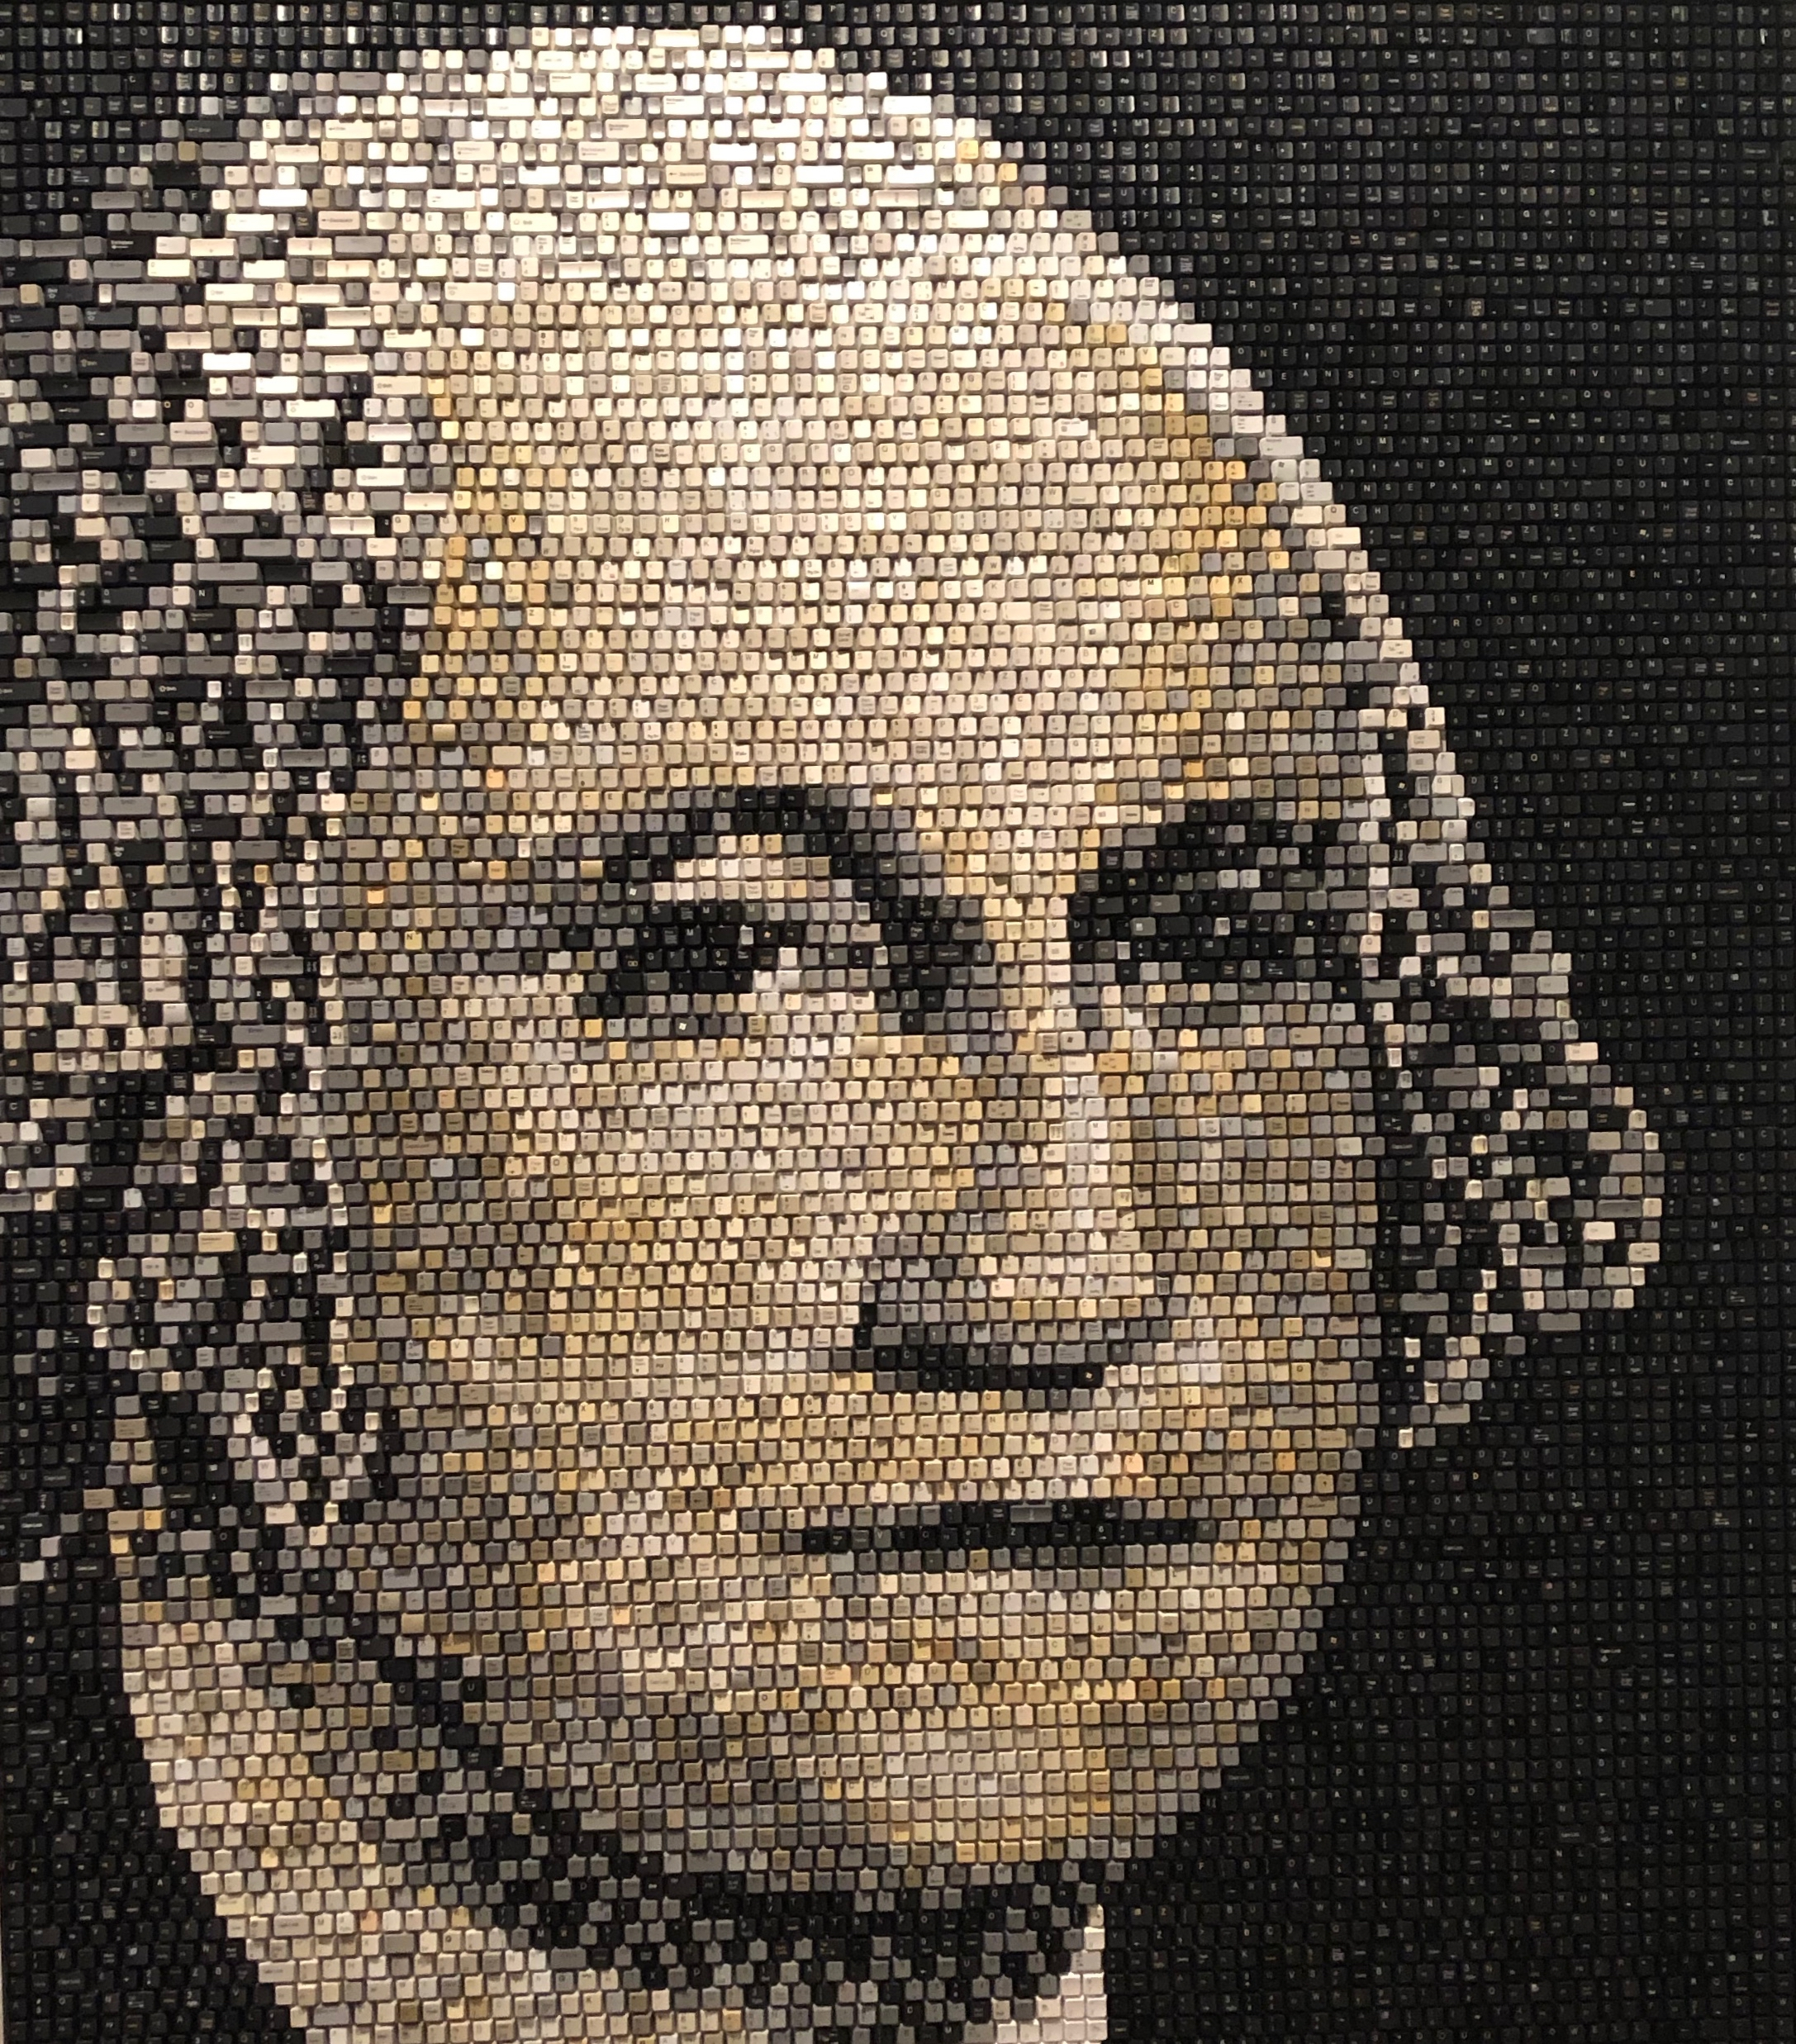 Museum Monday's: A New Look At George Washington